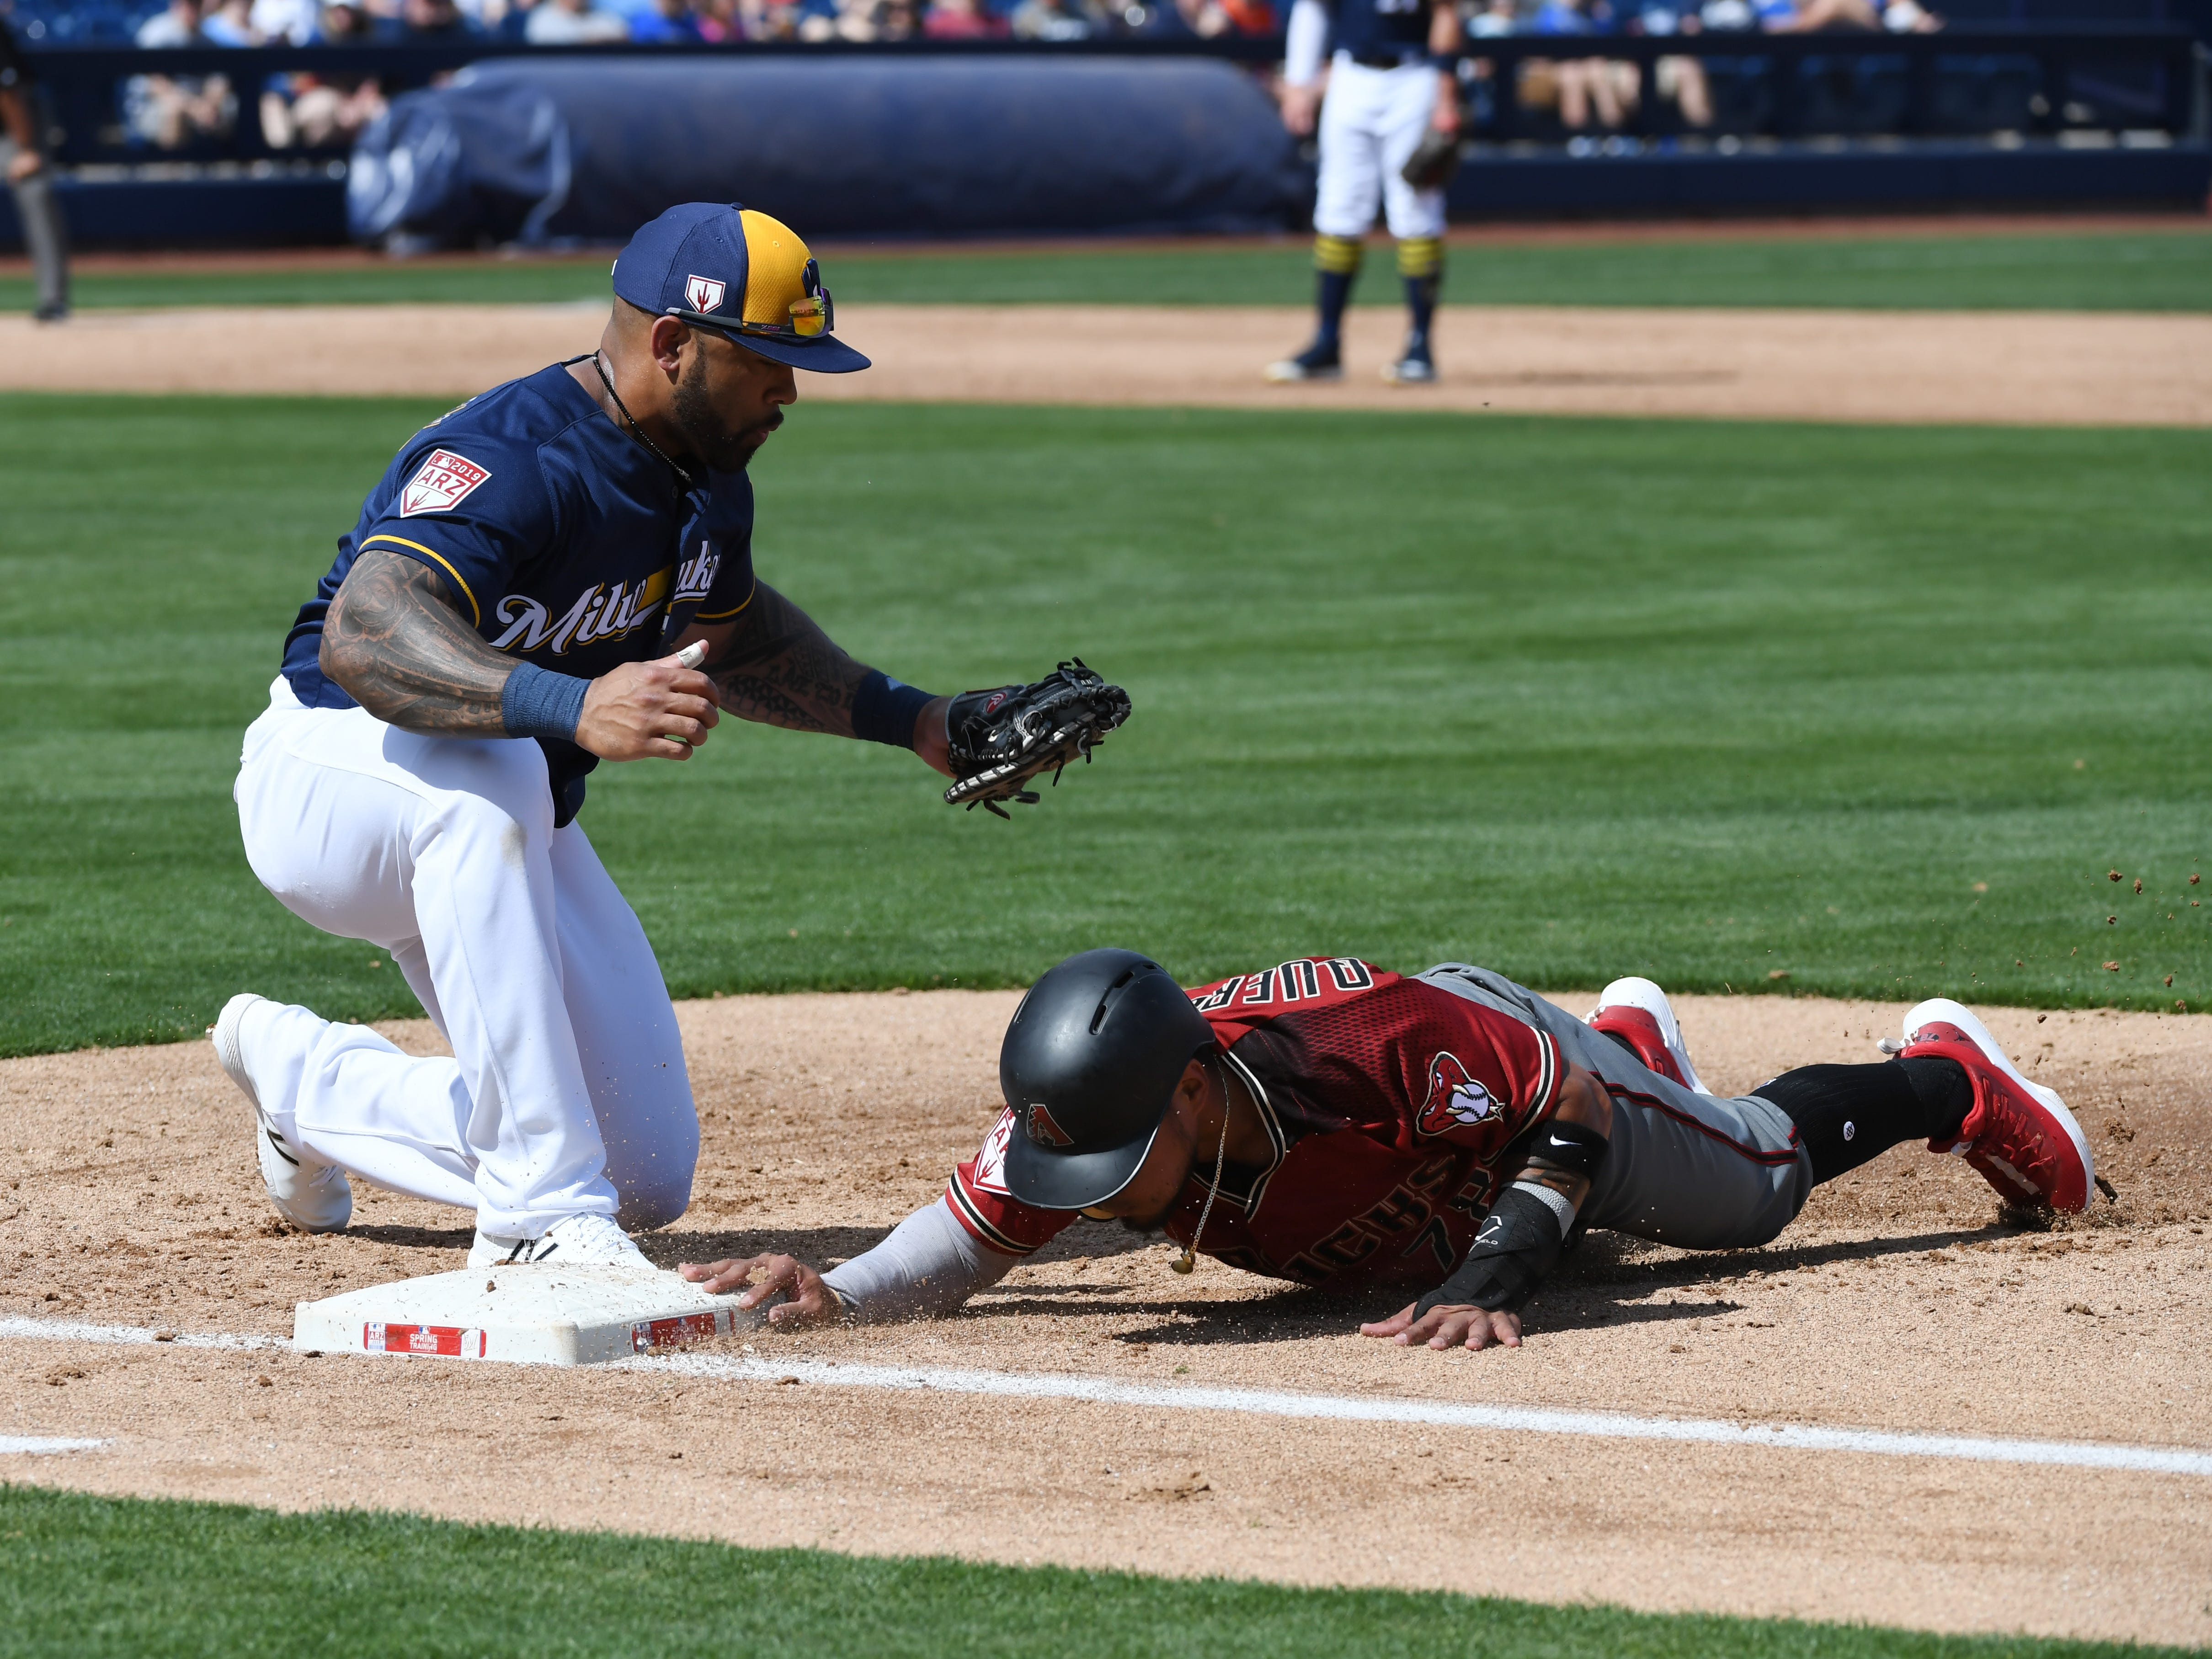 Juniel Querecuto #78 of the Arizona Diamondbacks safely dives back to first base as Eric Thames #7 of the Milwaukee Brewers applies a tag during the third inning of a spring training game at Maryvale Baseball Park on March 06, 2019 in Phoenix, Arizona.